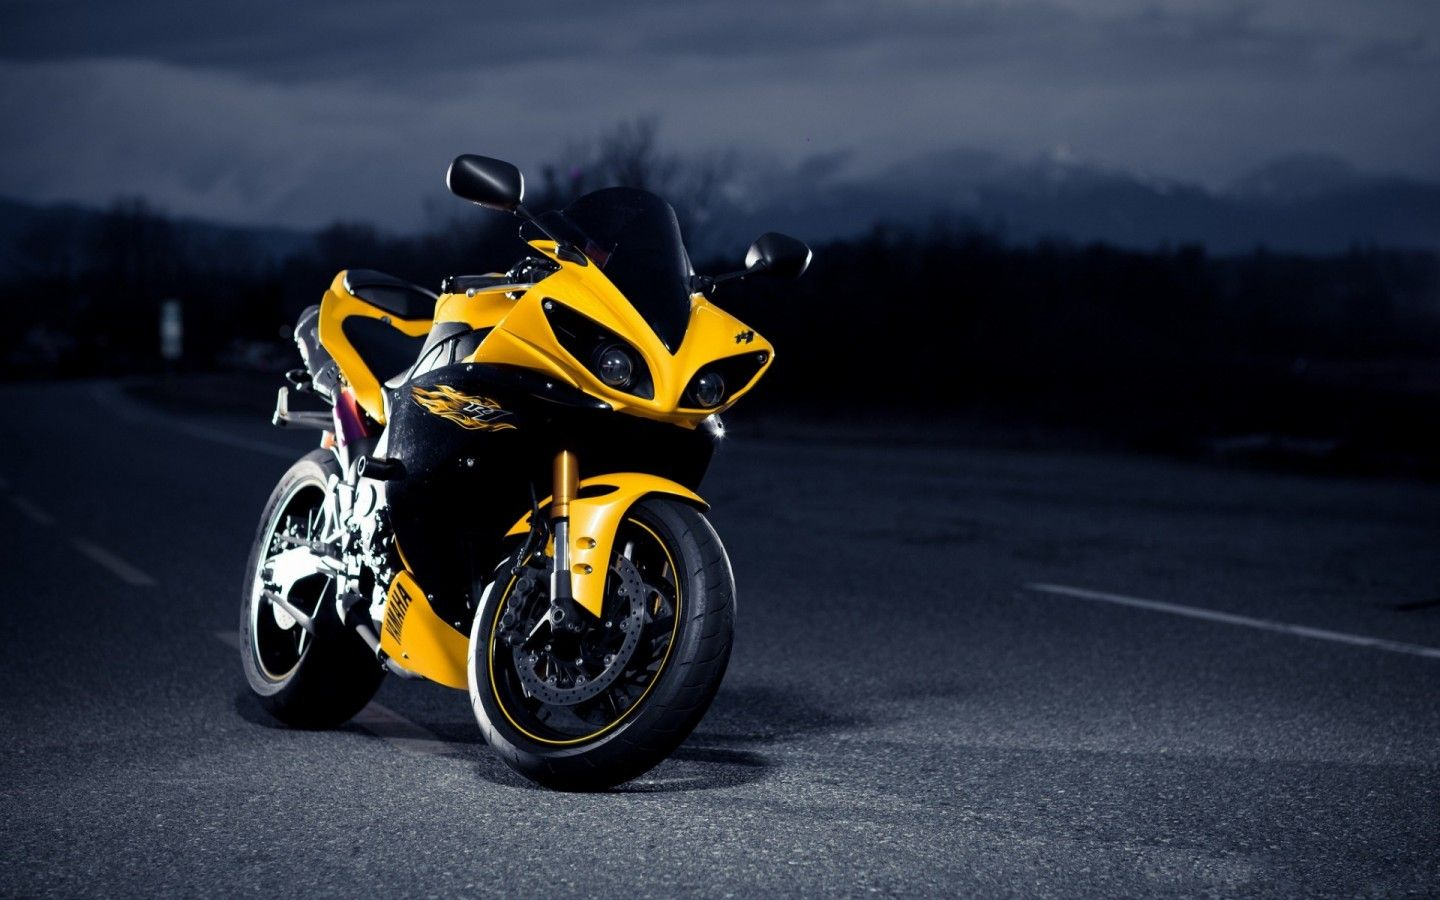 Sport Super Yamaha Bike New Hd Wallpaper Free Download Yamaha Bikes Yamaha R1 Sport Bikes